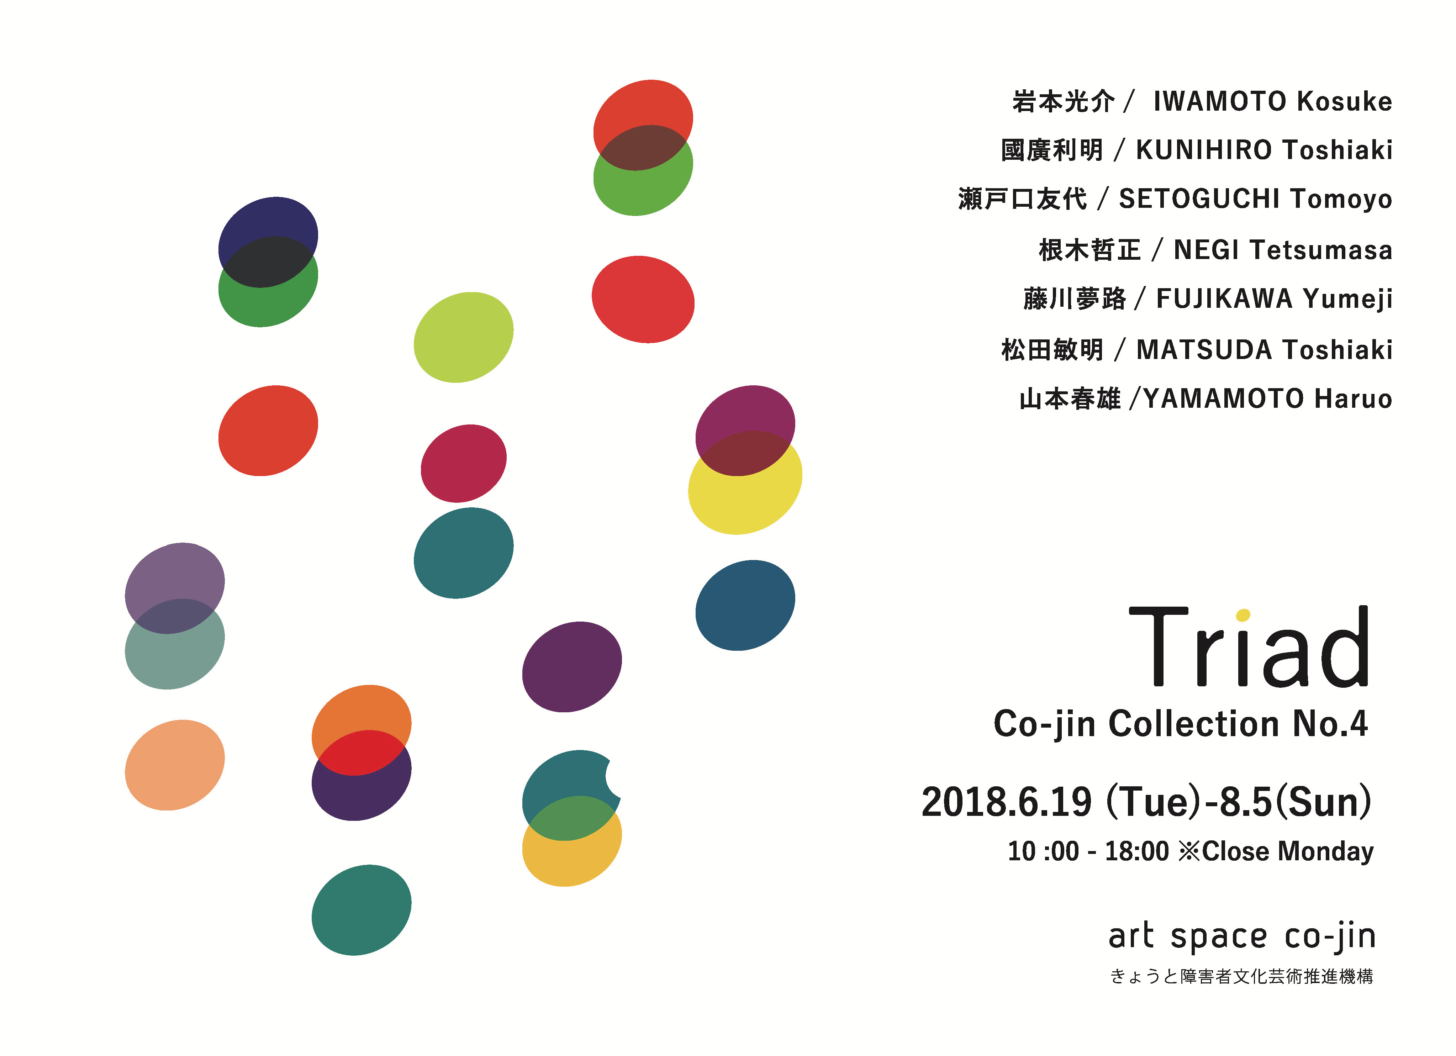 Co-jin Collection-コジコレ- No.4 Triad